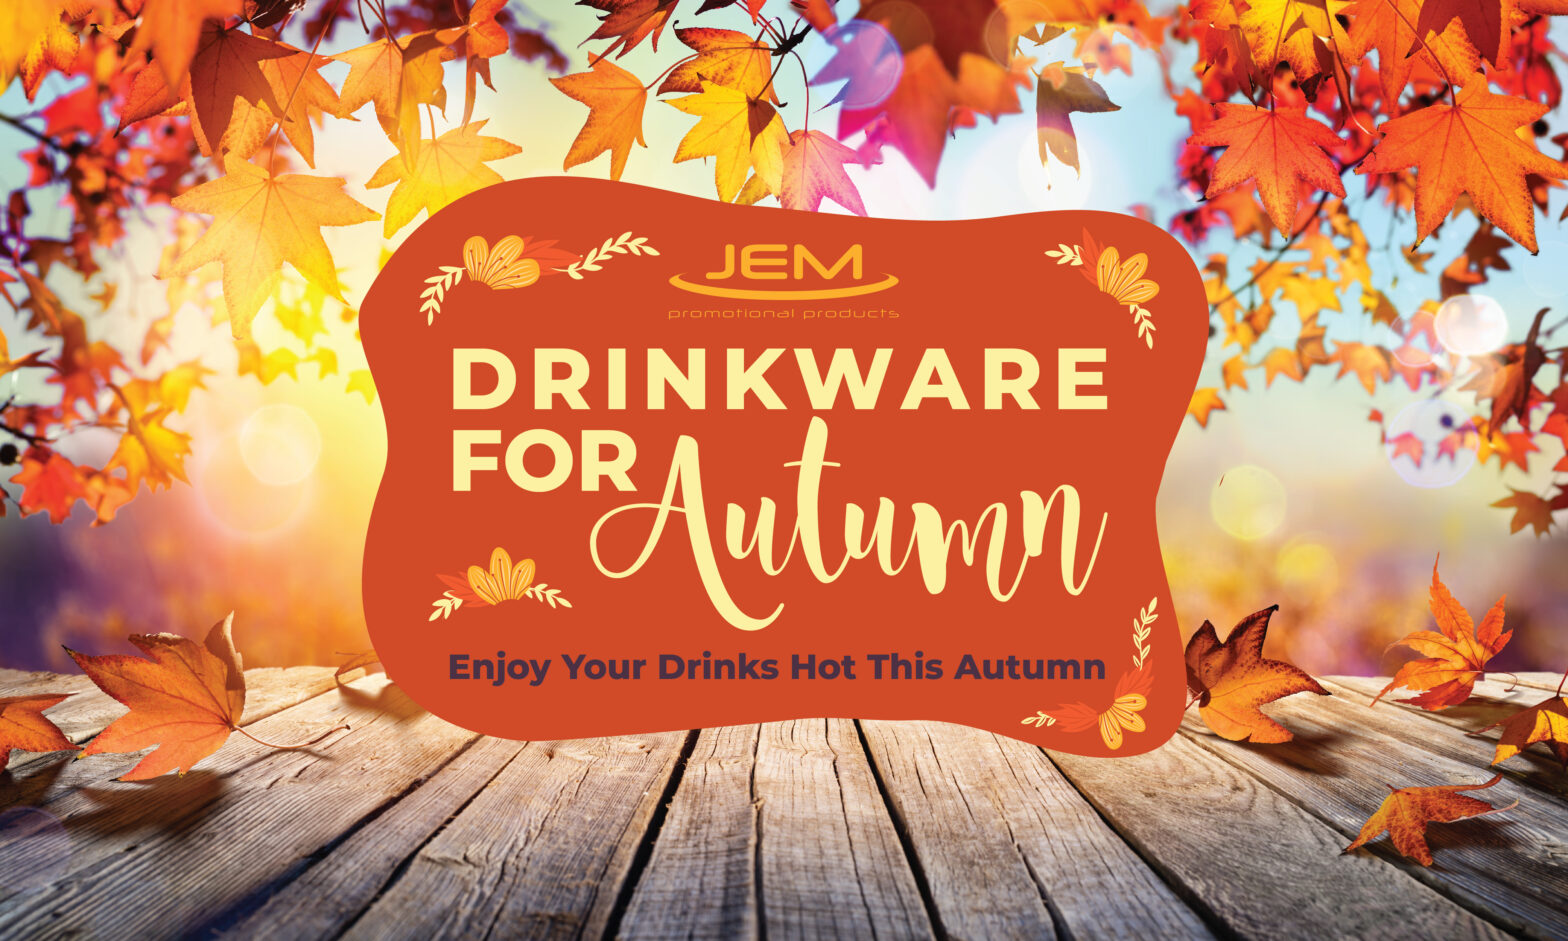 Drinkware for Autumn